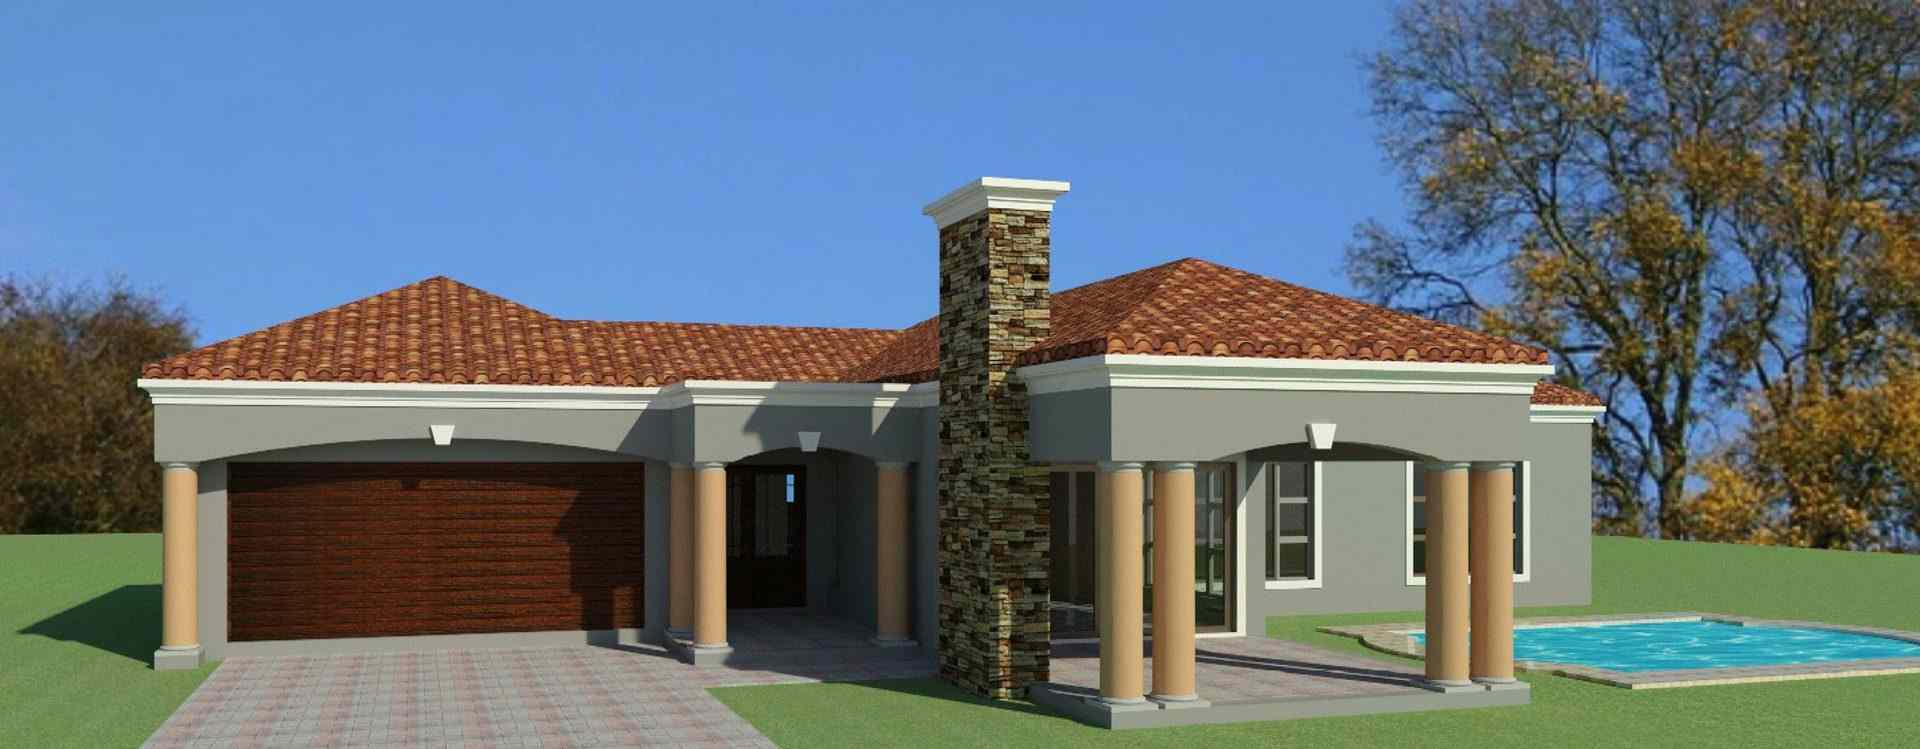 3 Bedroom House Plan For Sale  South African Designs  NethouseplansNethouseplans